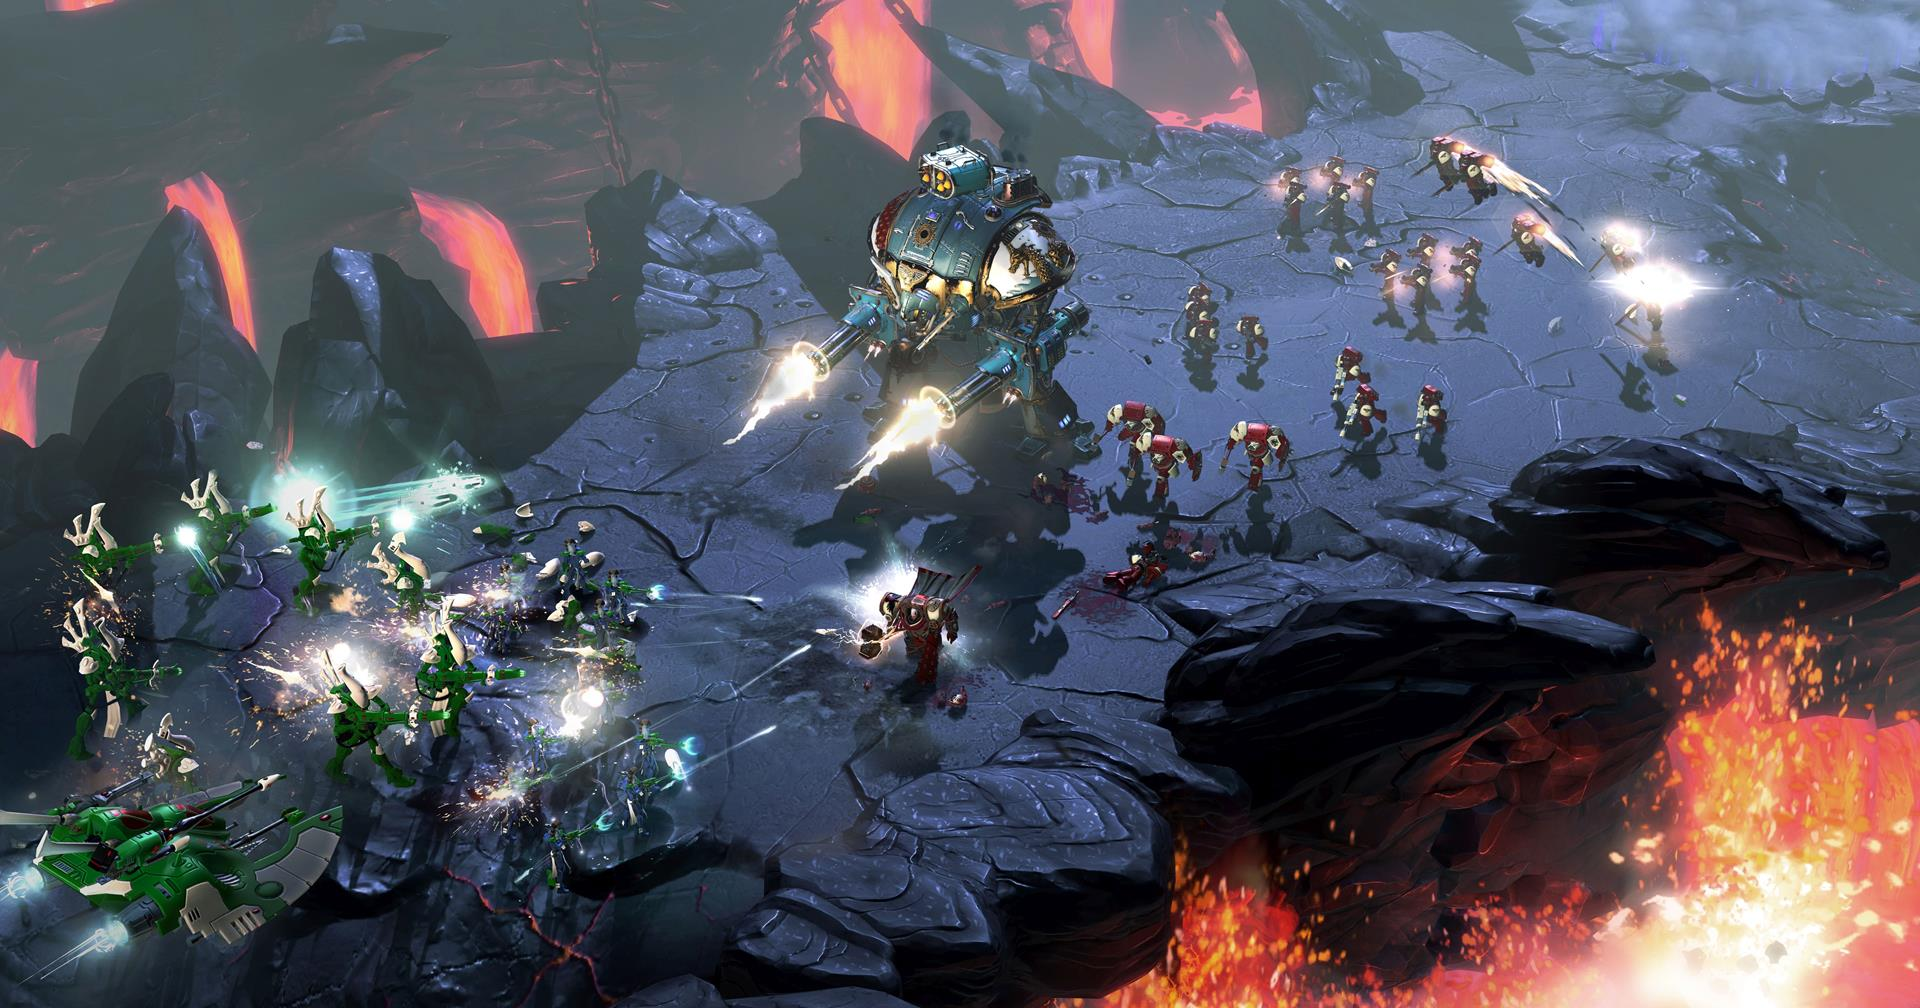 Warhammer 40,000: Dawn of War III big units